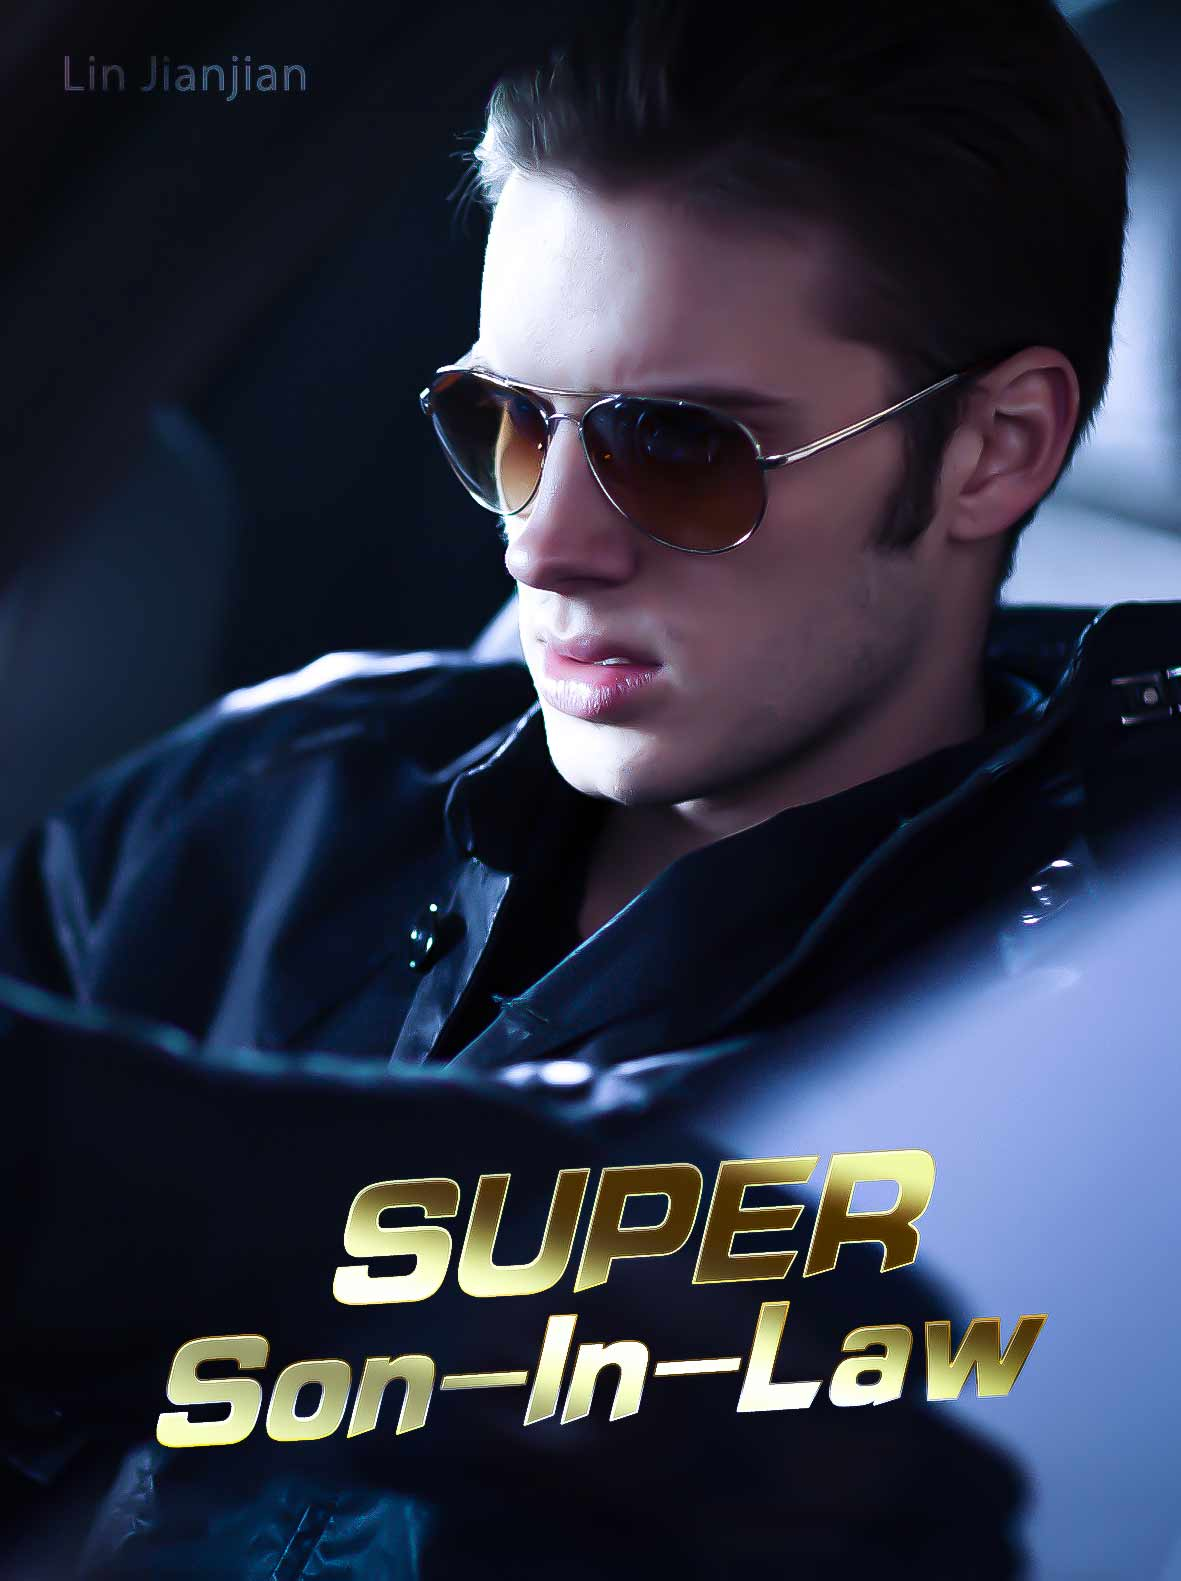 Super Son-In-Law